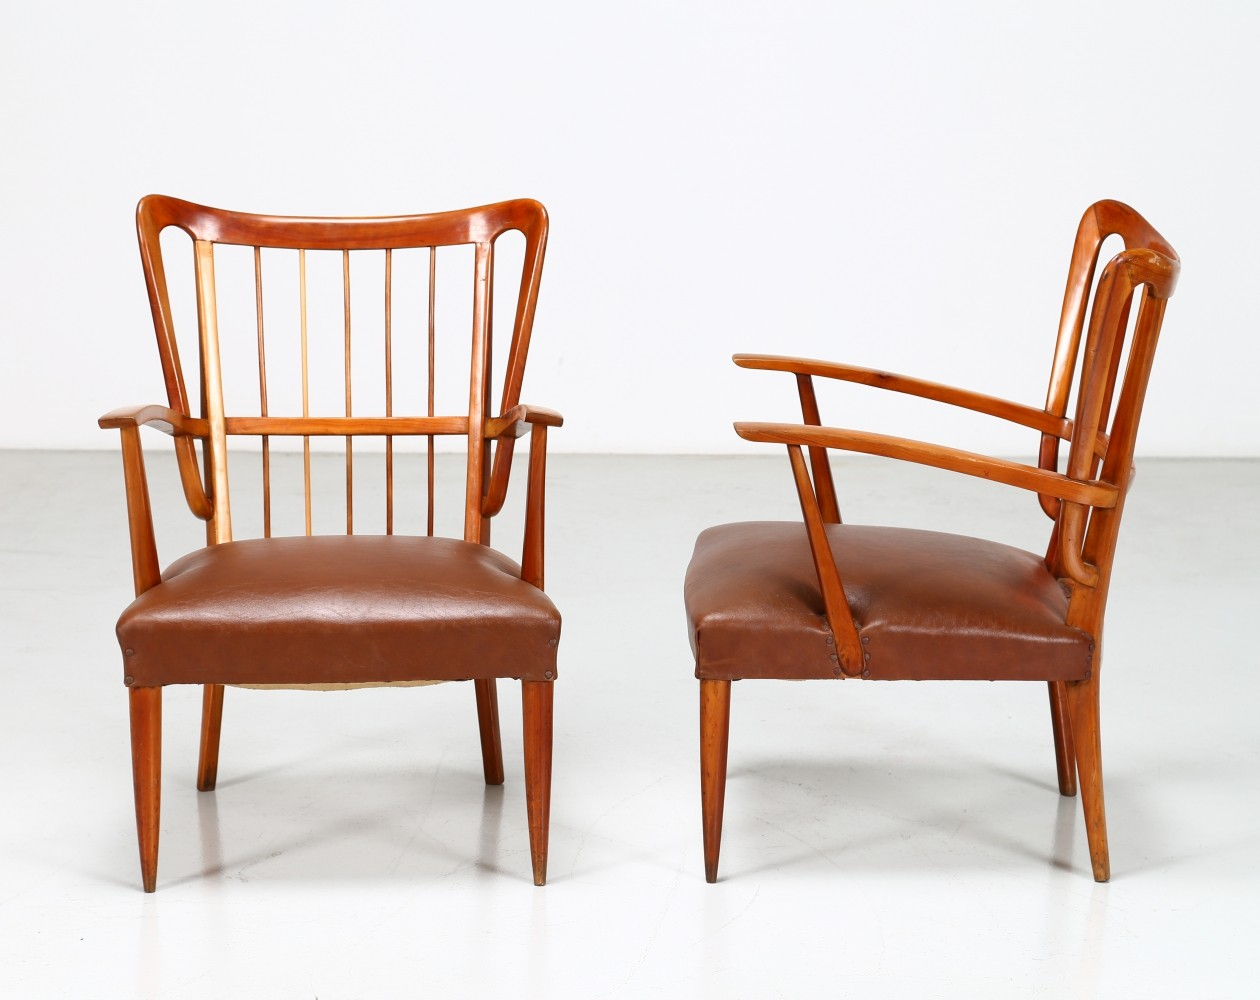 Him & Her chair by Paolo Buffa, 1950s